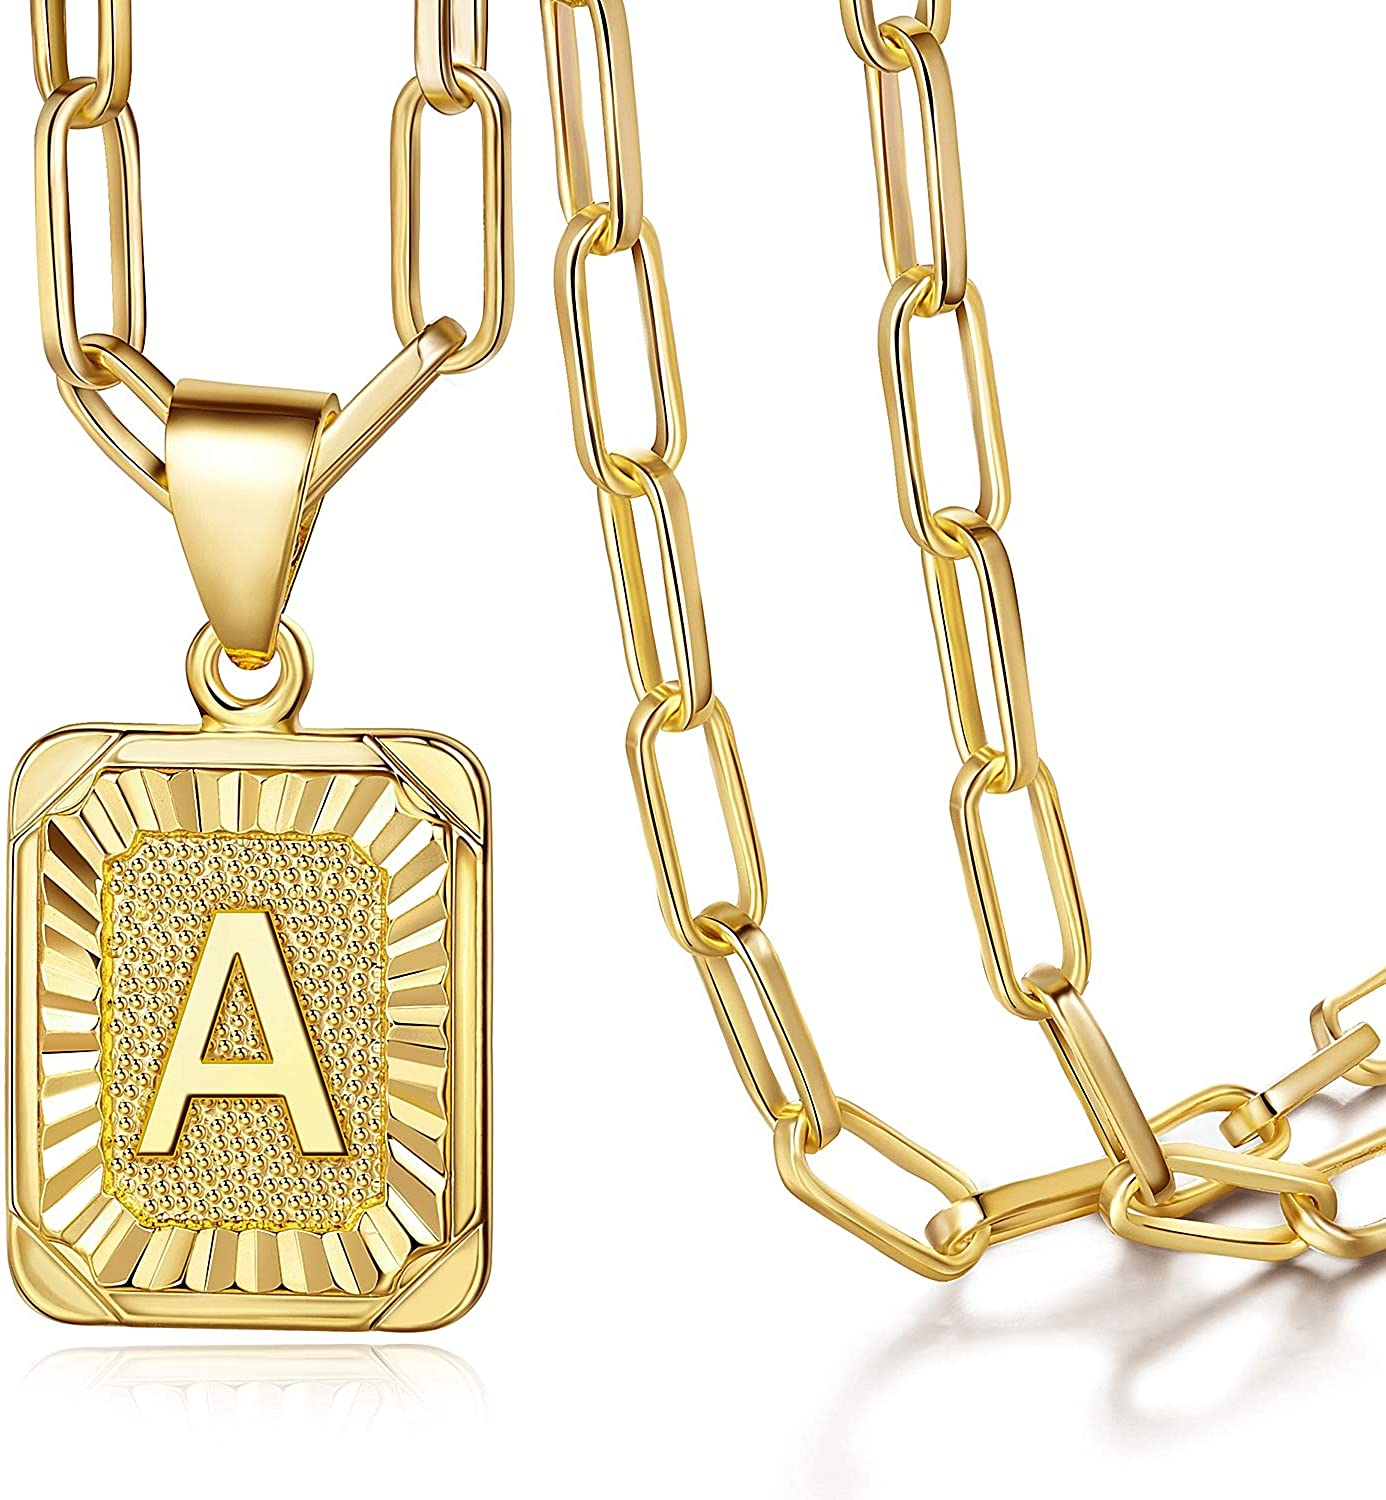 Annamate Capital Initial Letter Charm Pendant Necklace for Mens Womens Teenage Girls BFF Mom Dad 18K Gold Plated Square Rectangle A-Z 26 Letters Pendants Necklace, 20-22inch